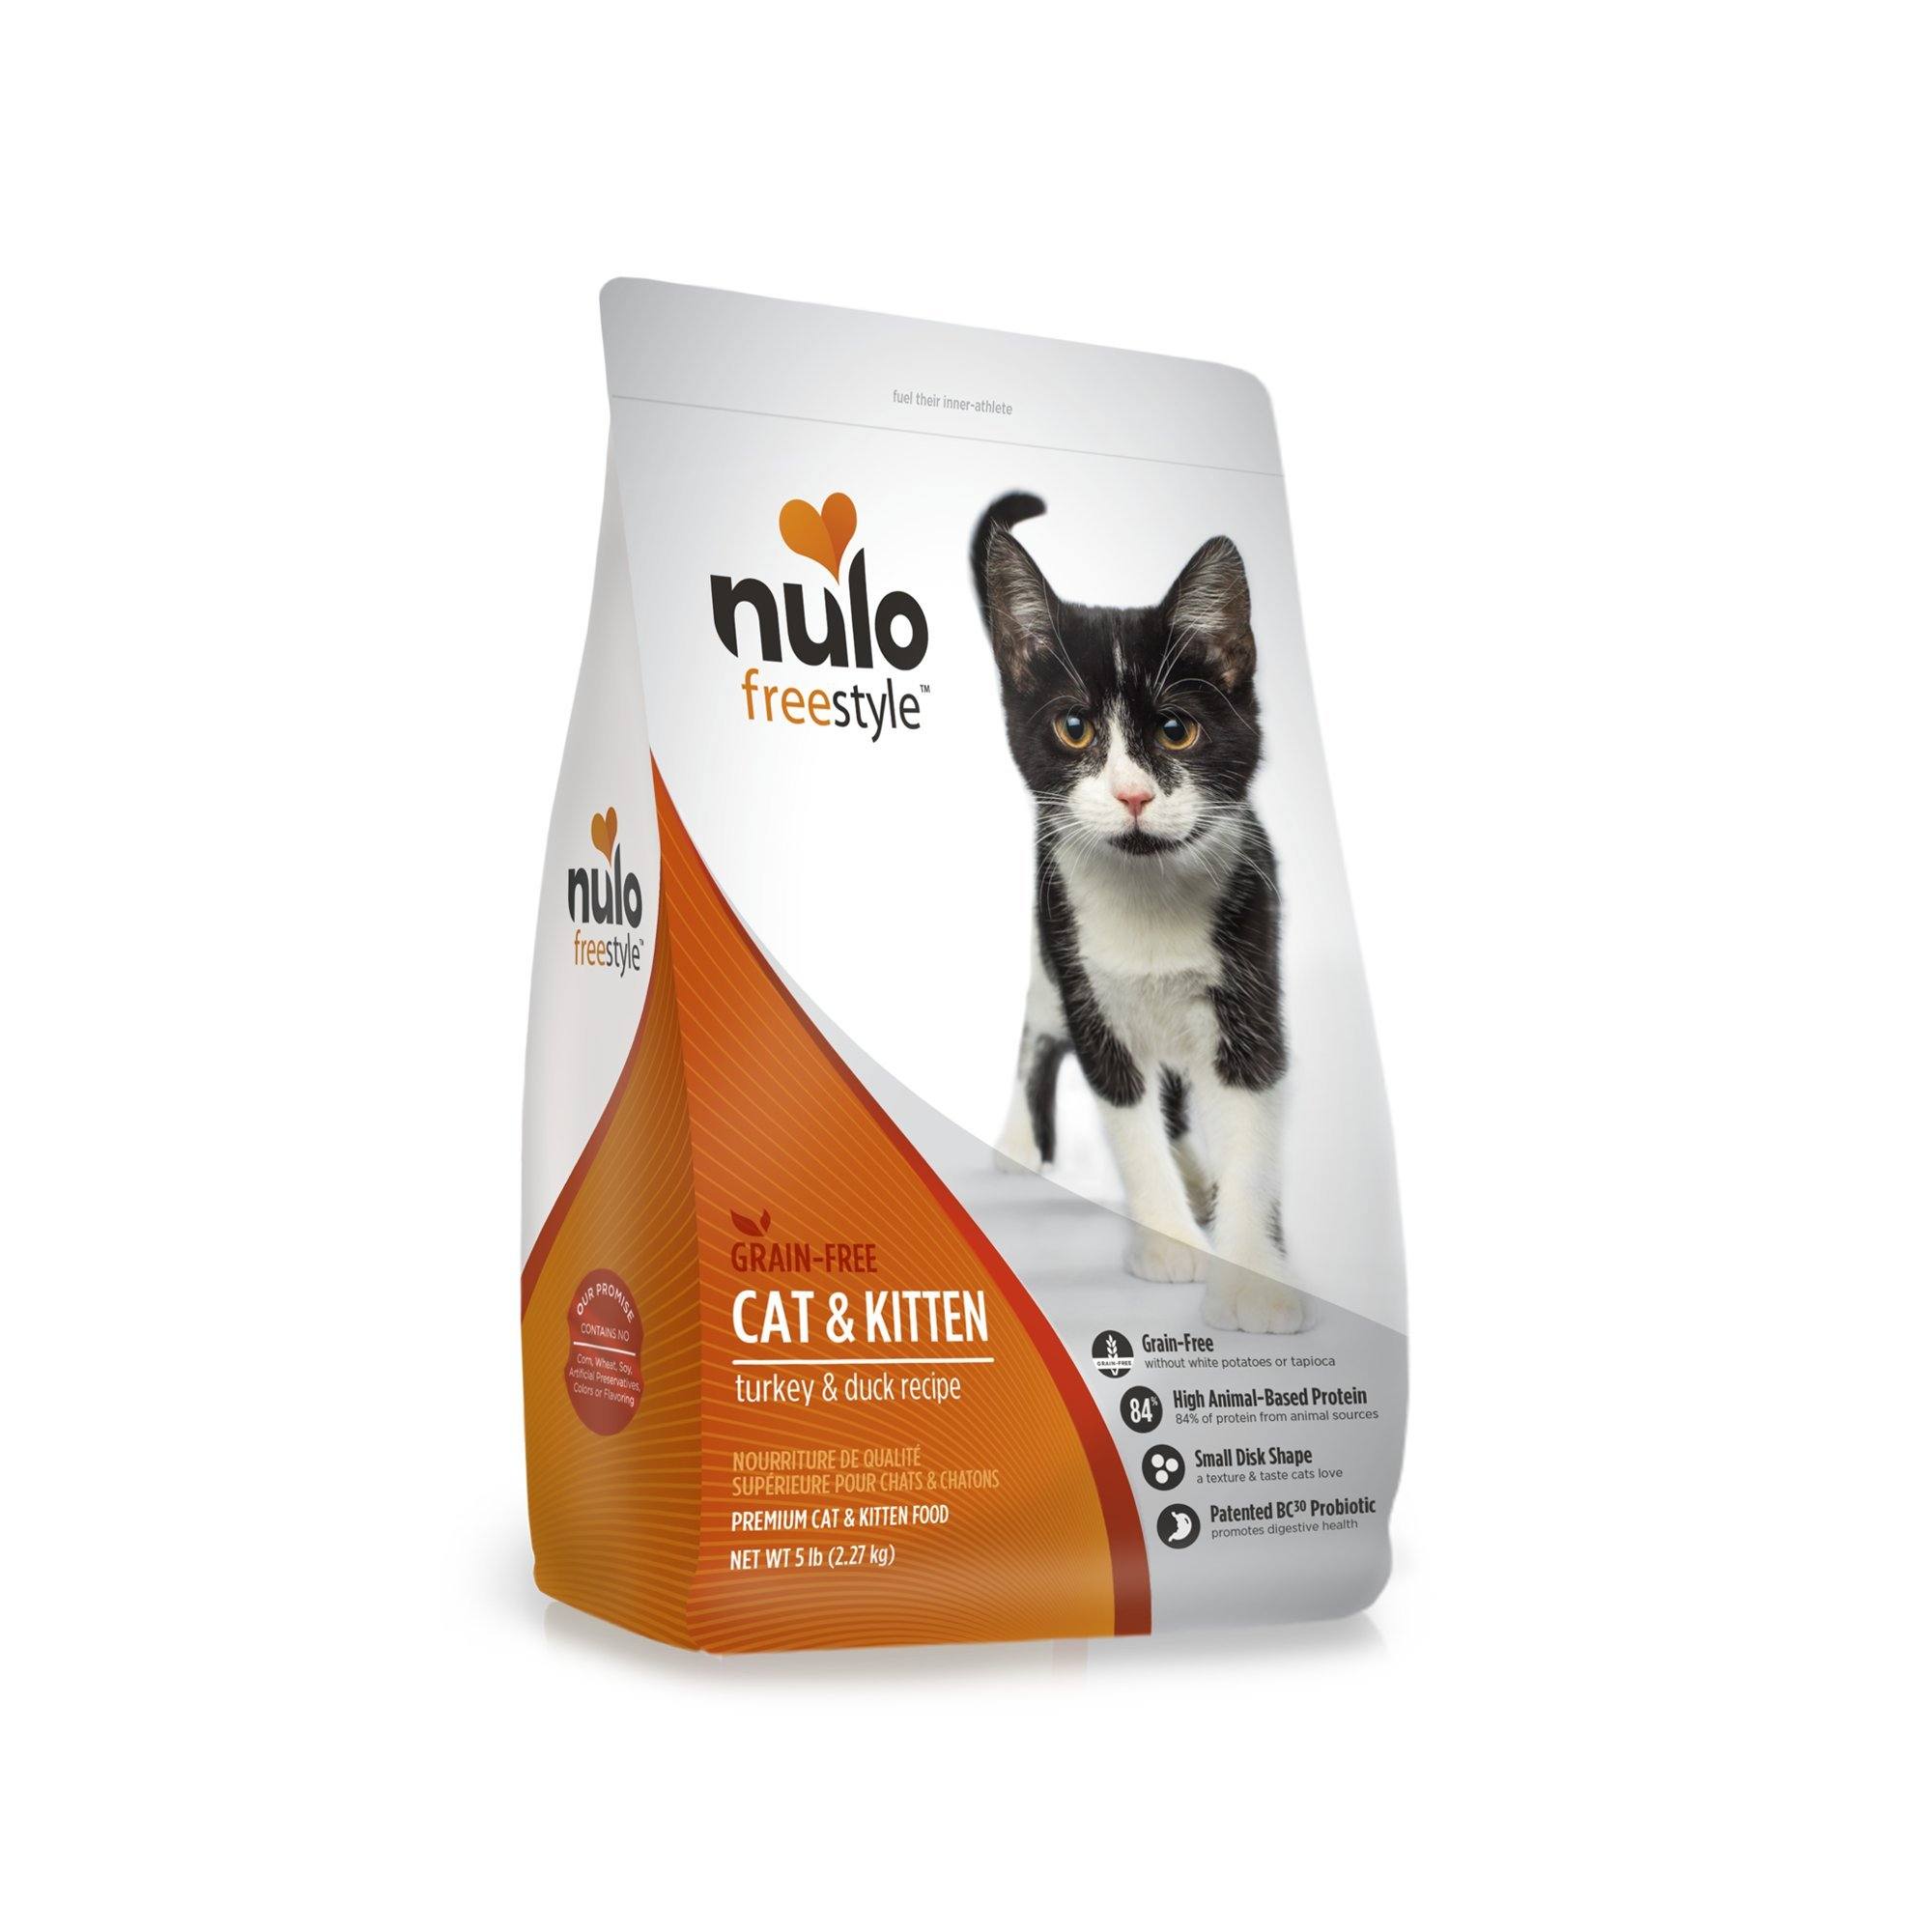 Nulo Adult & Kitten Grain Free Dry Cat Food With Bc30 Probiotic (Turkey, 5Lb Bag) by Nulo